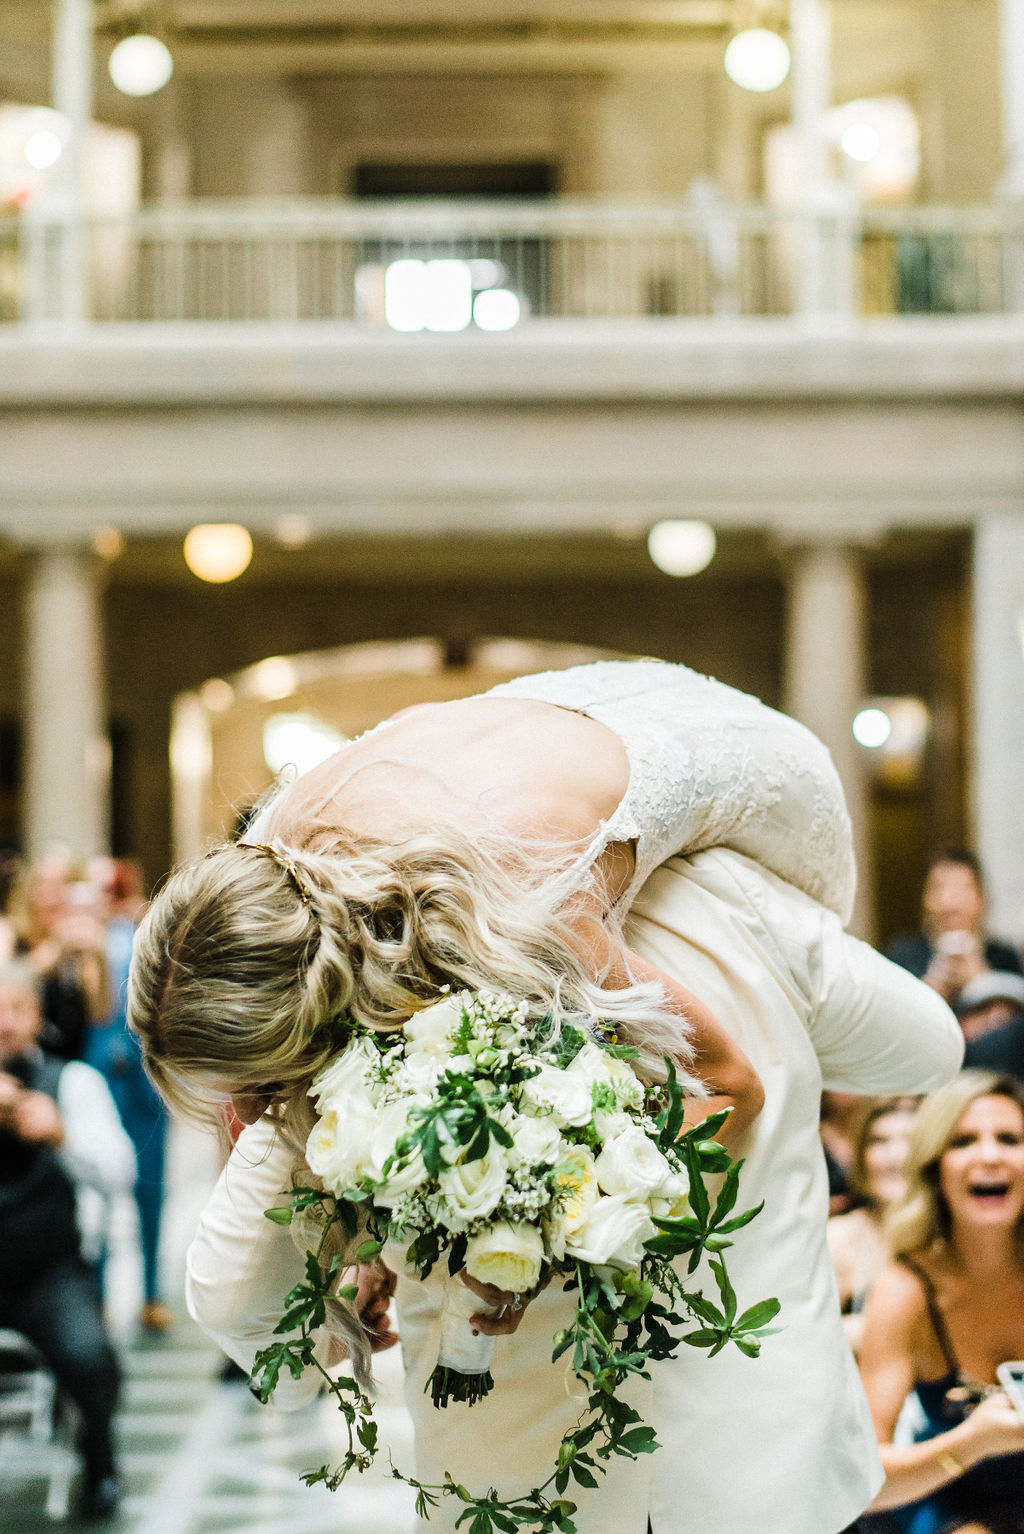 Groom carries bride over his shoulder down the aisle at their Great Gatsby themed wedding - Pearl Weddings & Events